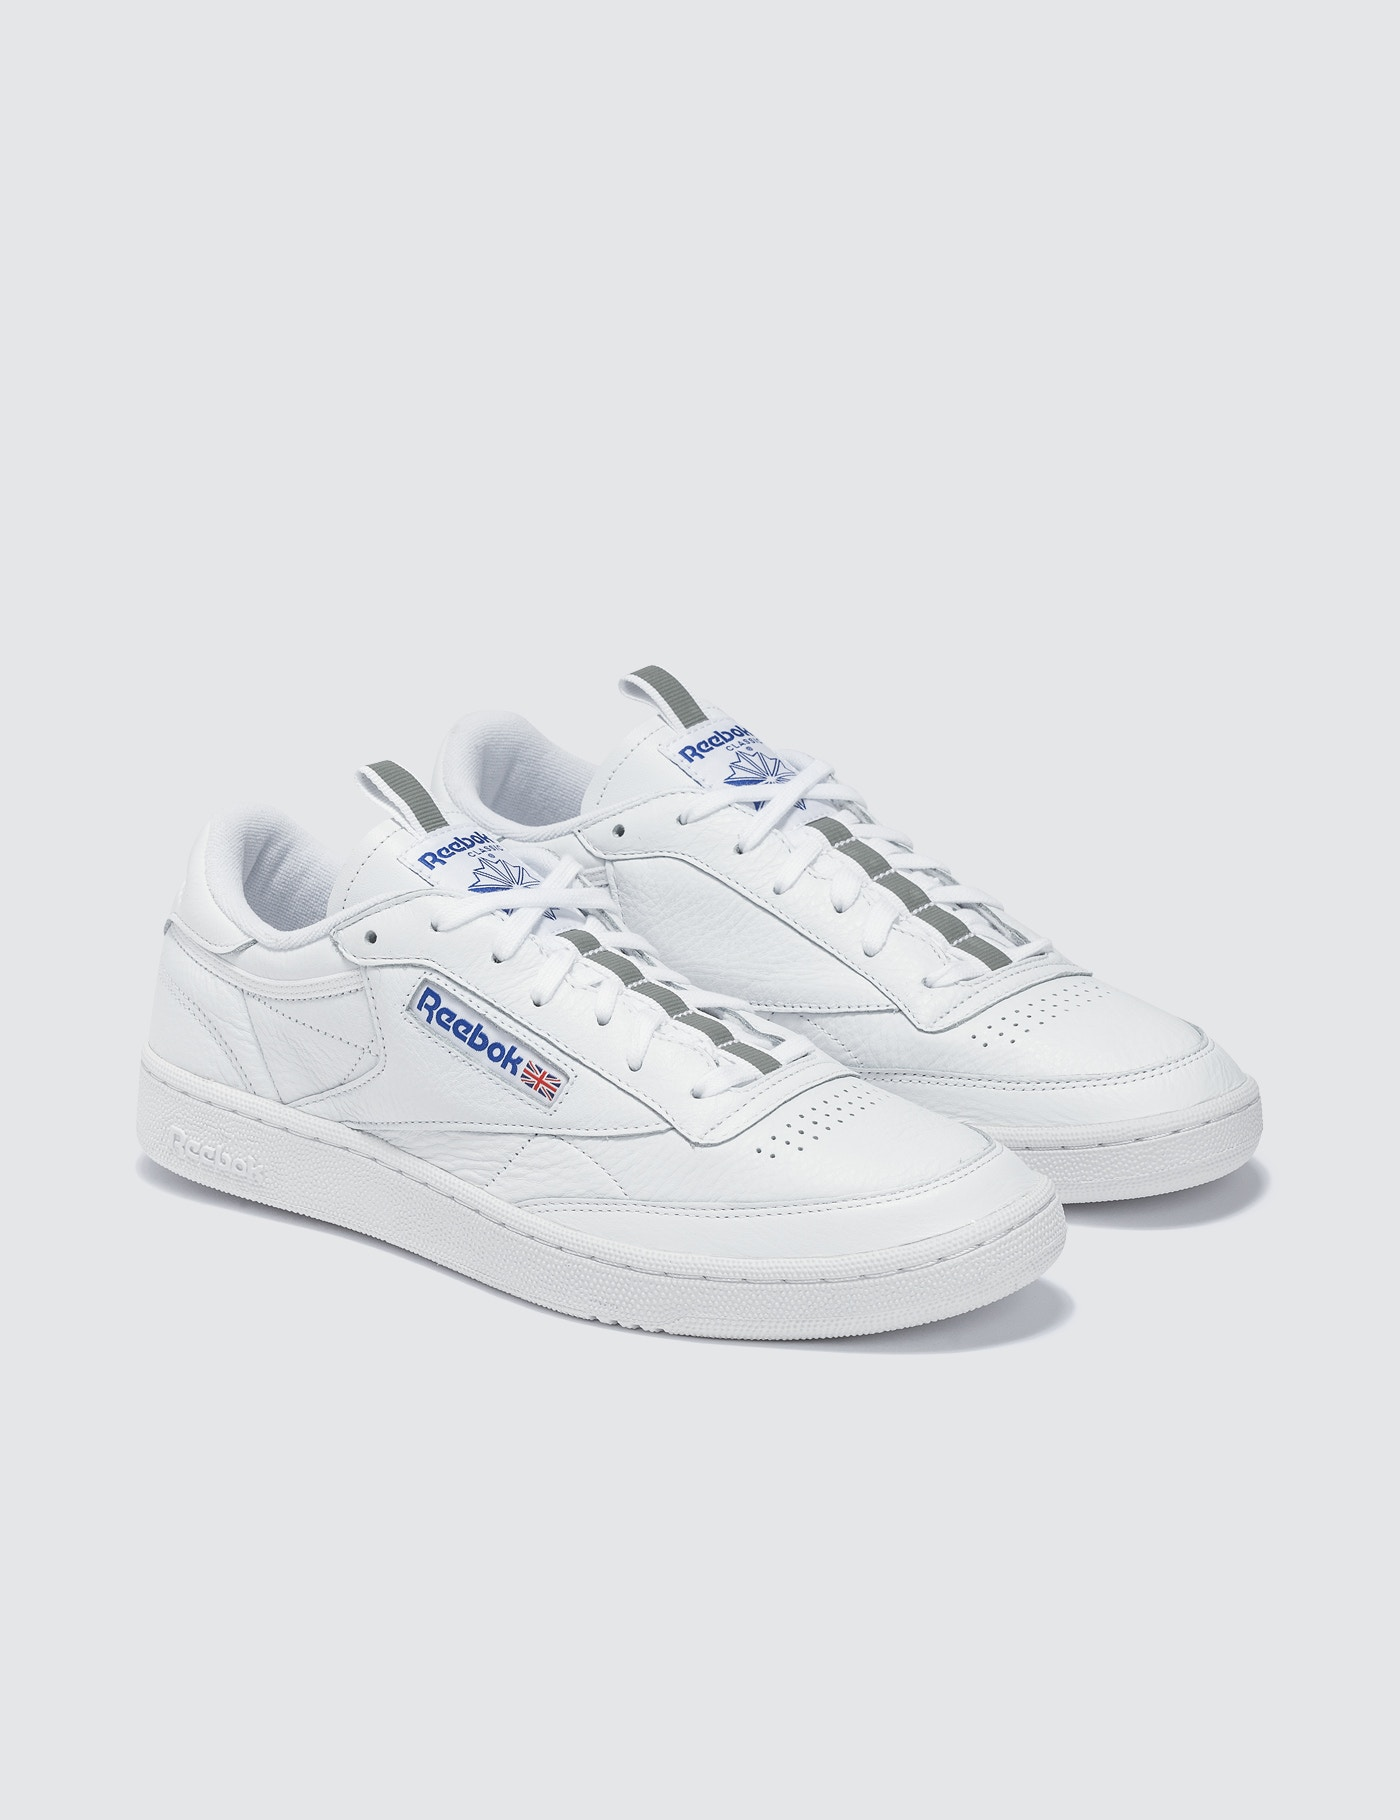 bd0b461980e Buy Original Reebok Club C 85 RT at Indonesia